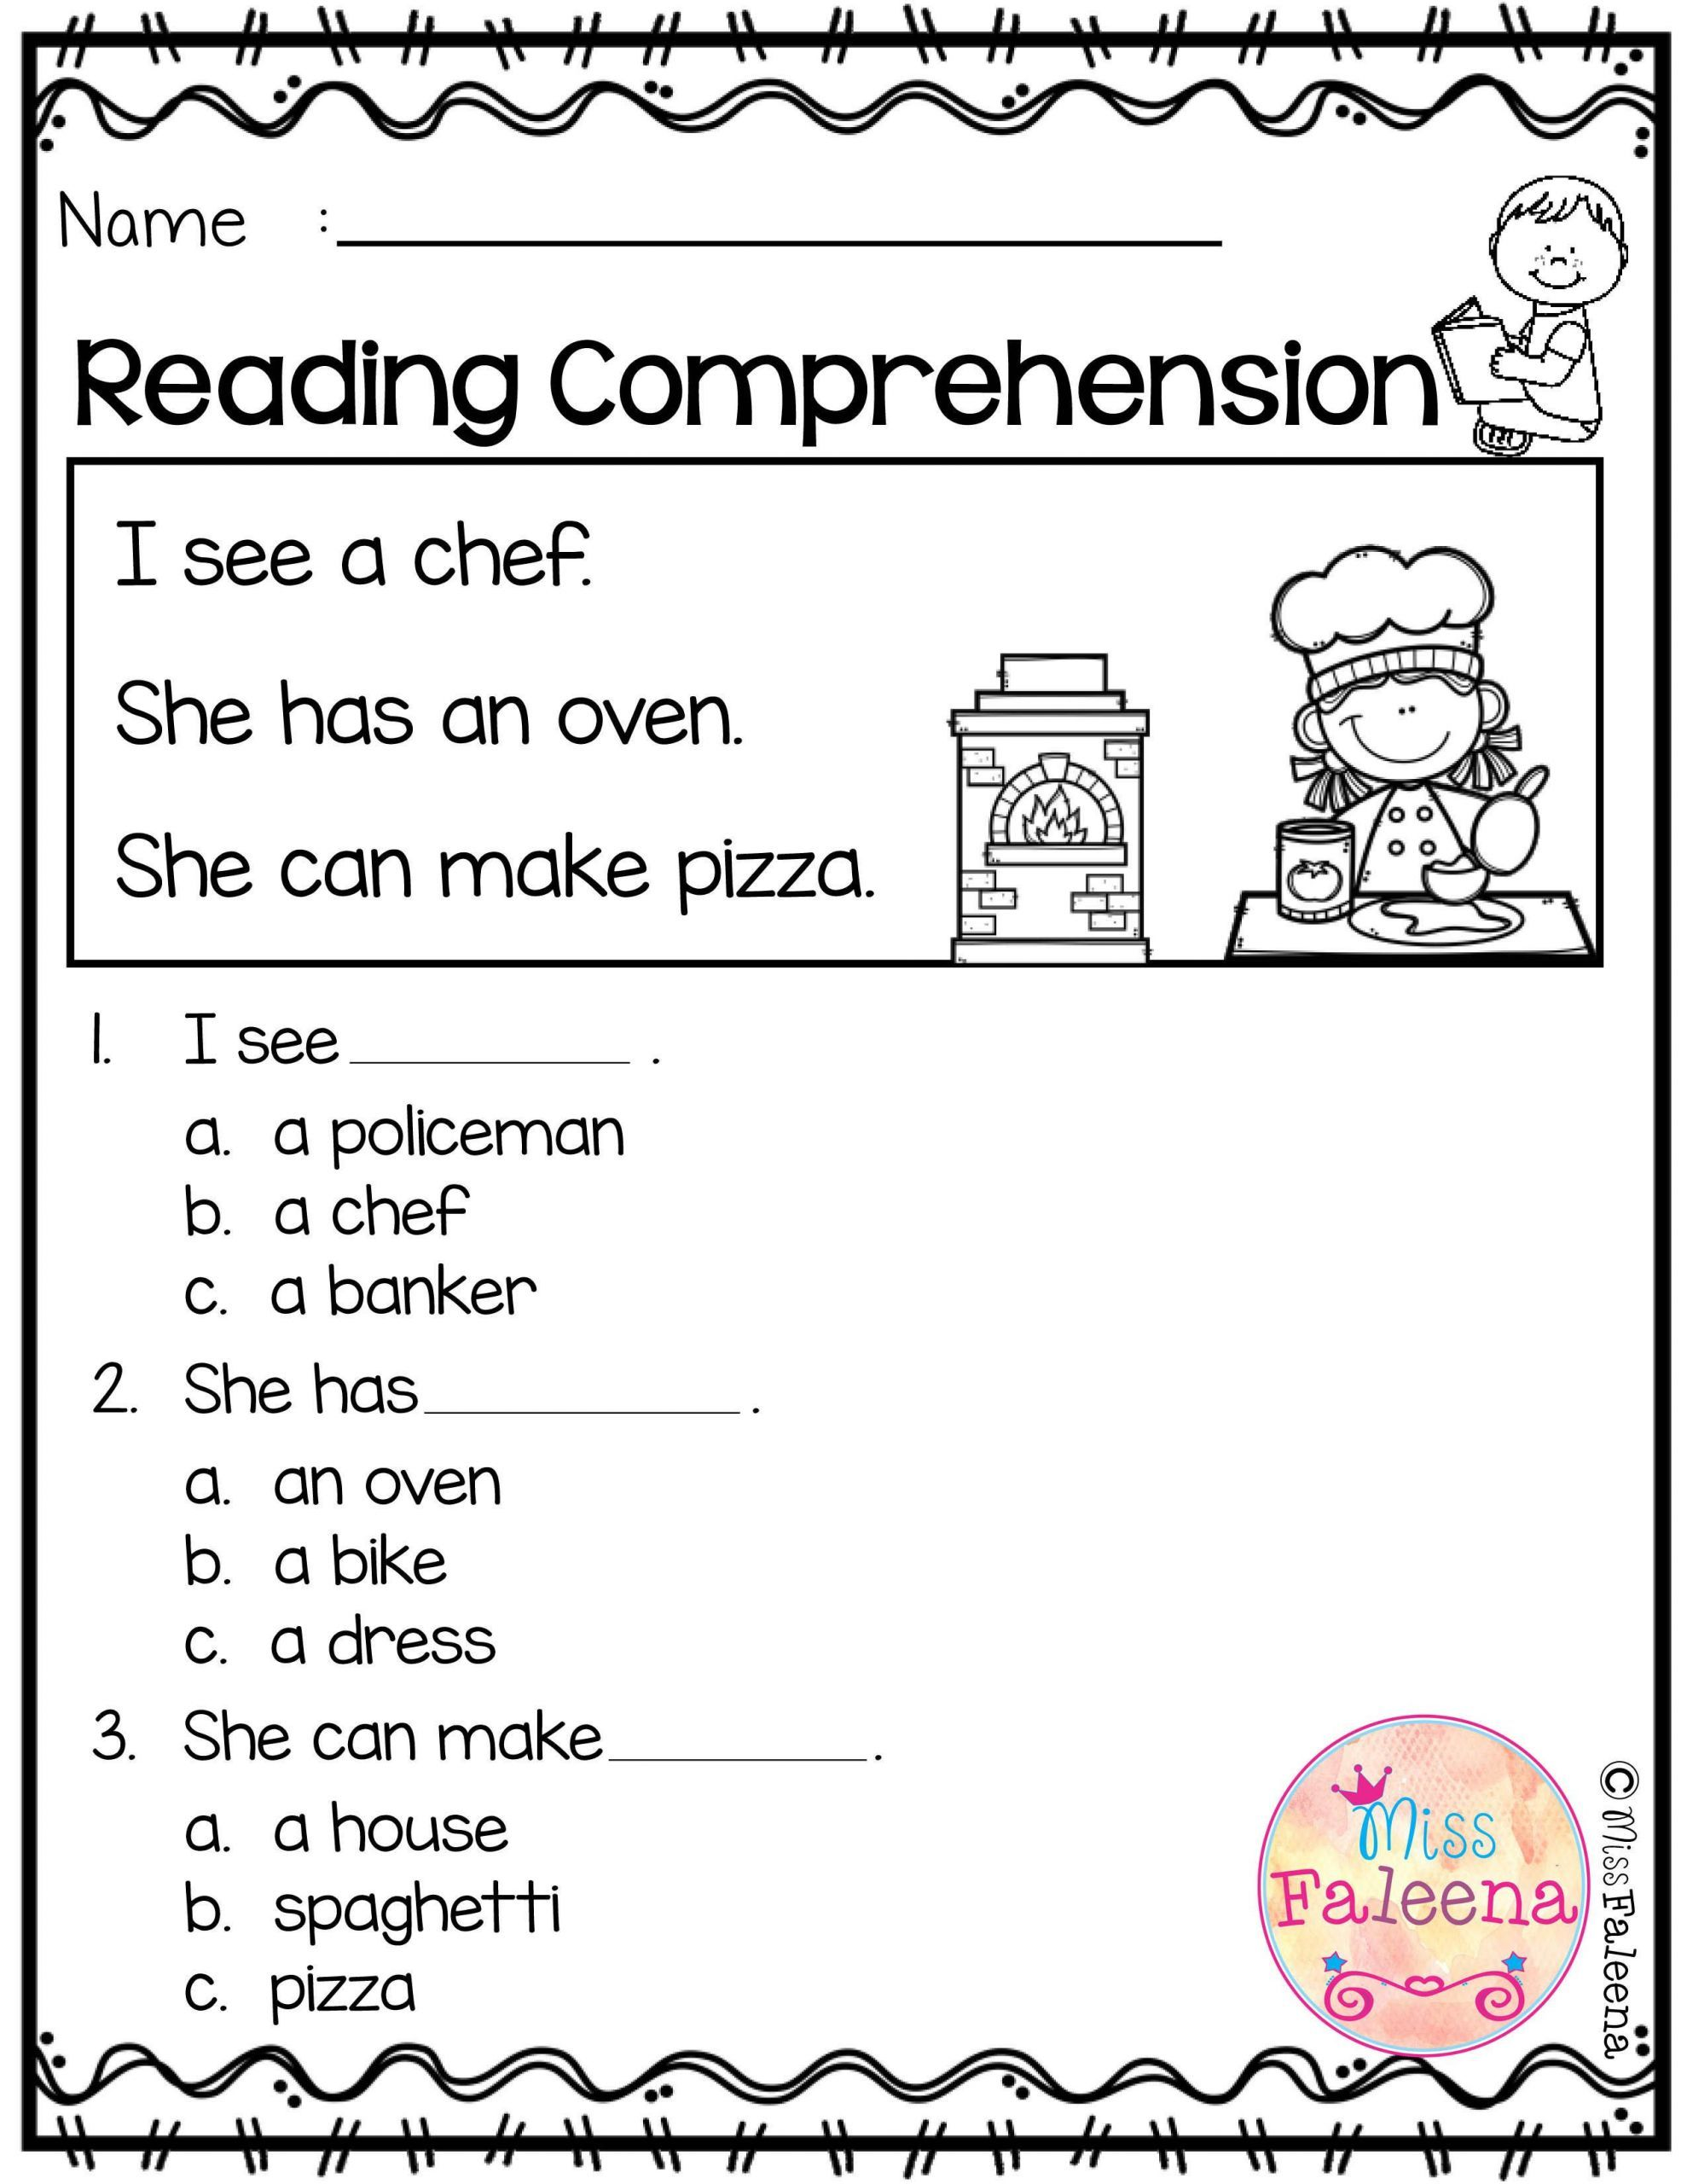 - 5 Free Math Worksheets Second Grade 2 Subtraction Subtract Whole